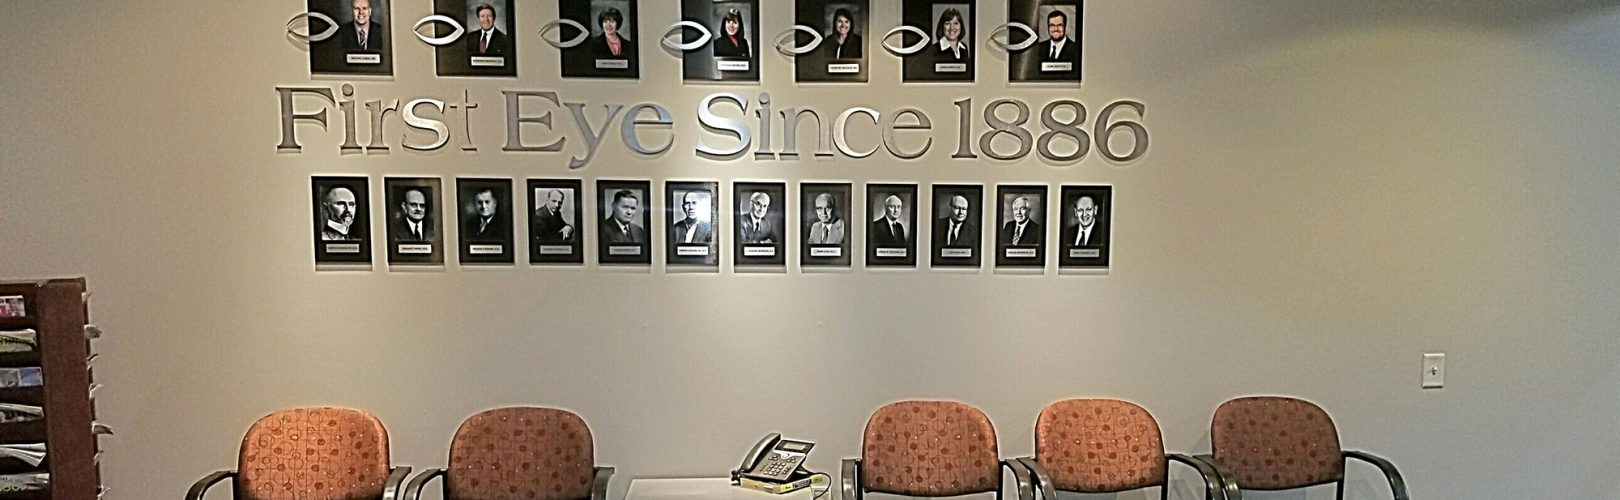 First Eye Associates waiting room with logo on the wall